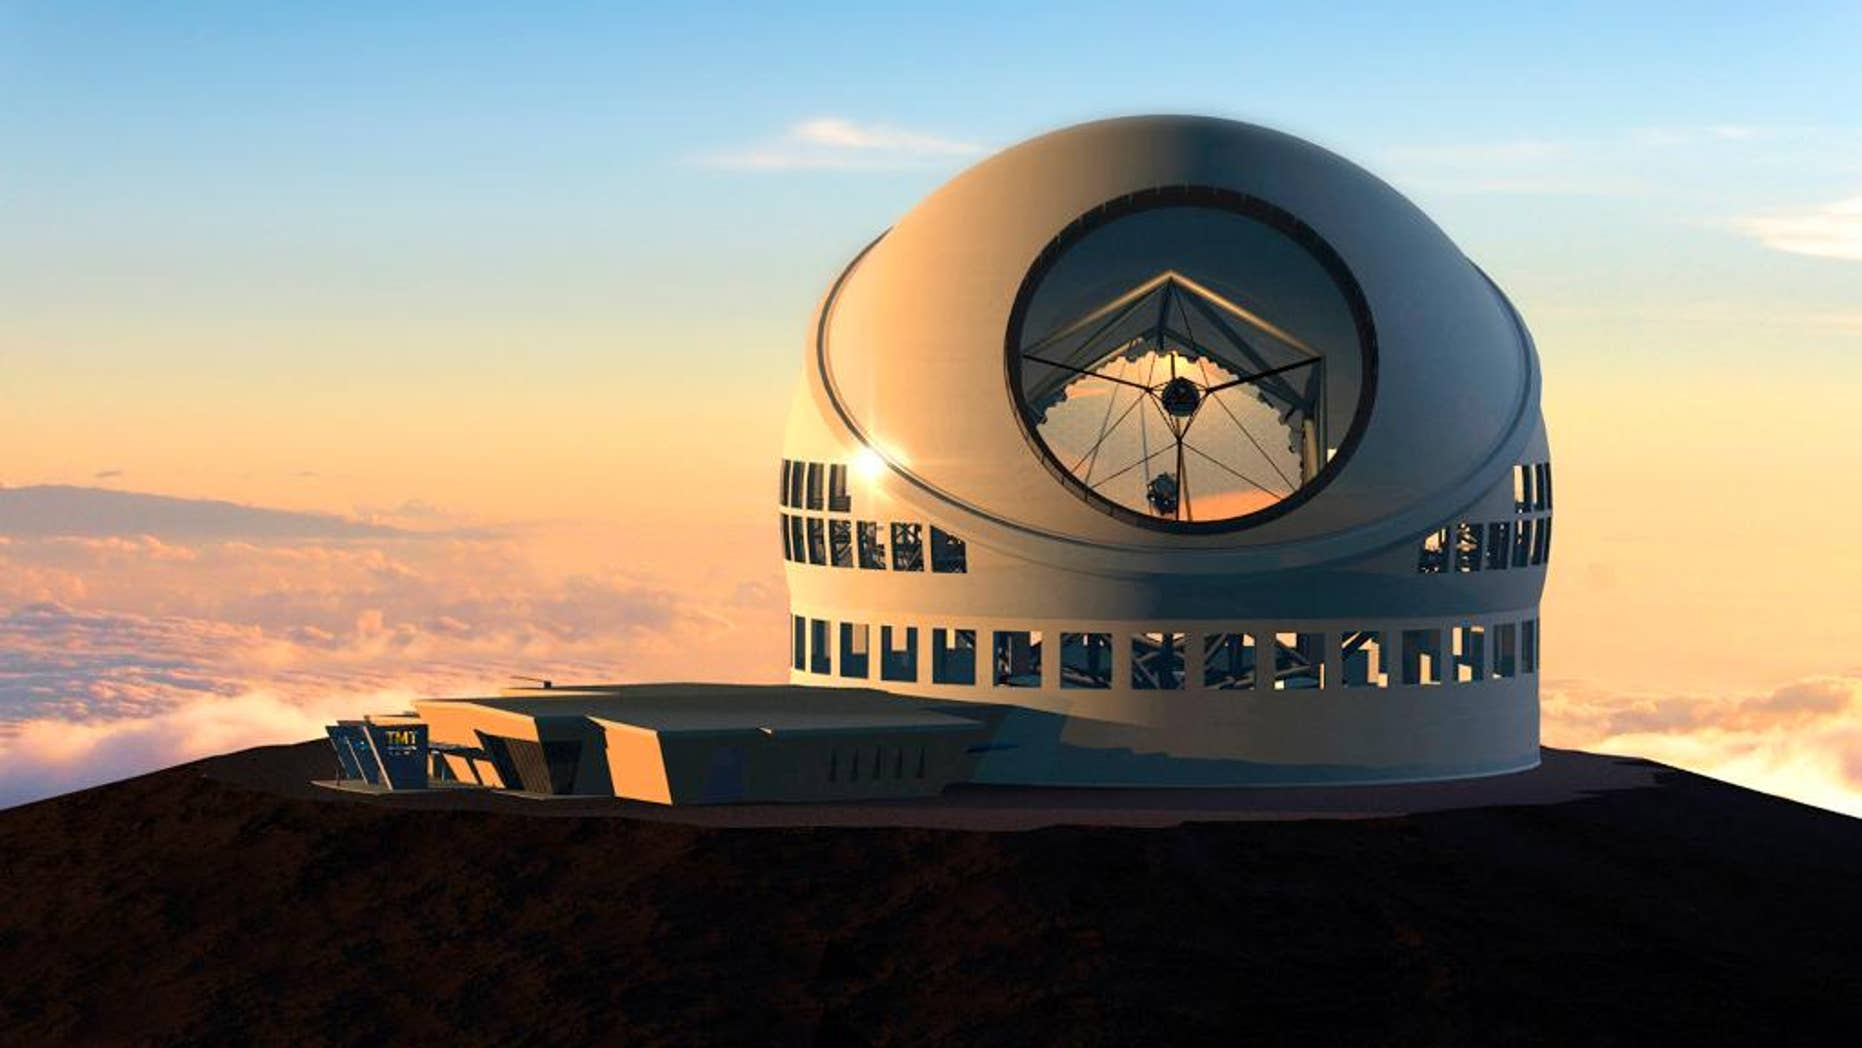 FILE - This undated file artist rendering made available by the TMT Observatory Corporation shows the proposed Thirty Meter Telescope, planned to be built atop Mauna Kea, a large dormant volcano in Hilo on the Big Island of Hawaii in Hawaii. (AP Photo/TMT Observatory Corporation, File)